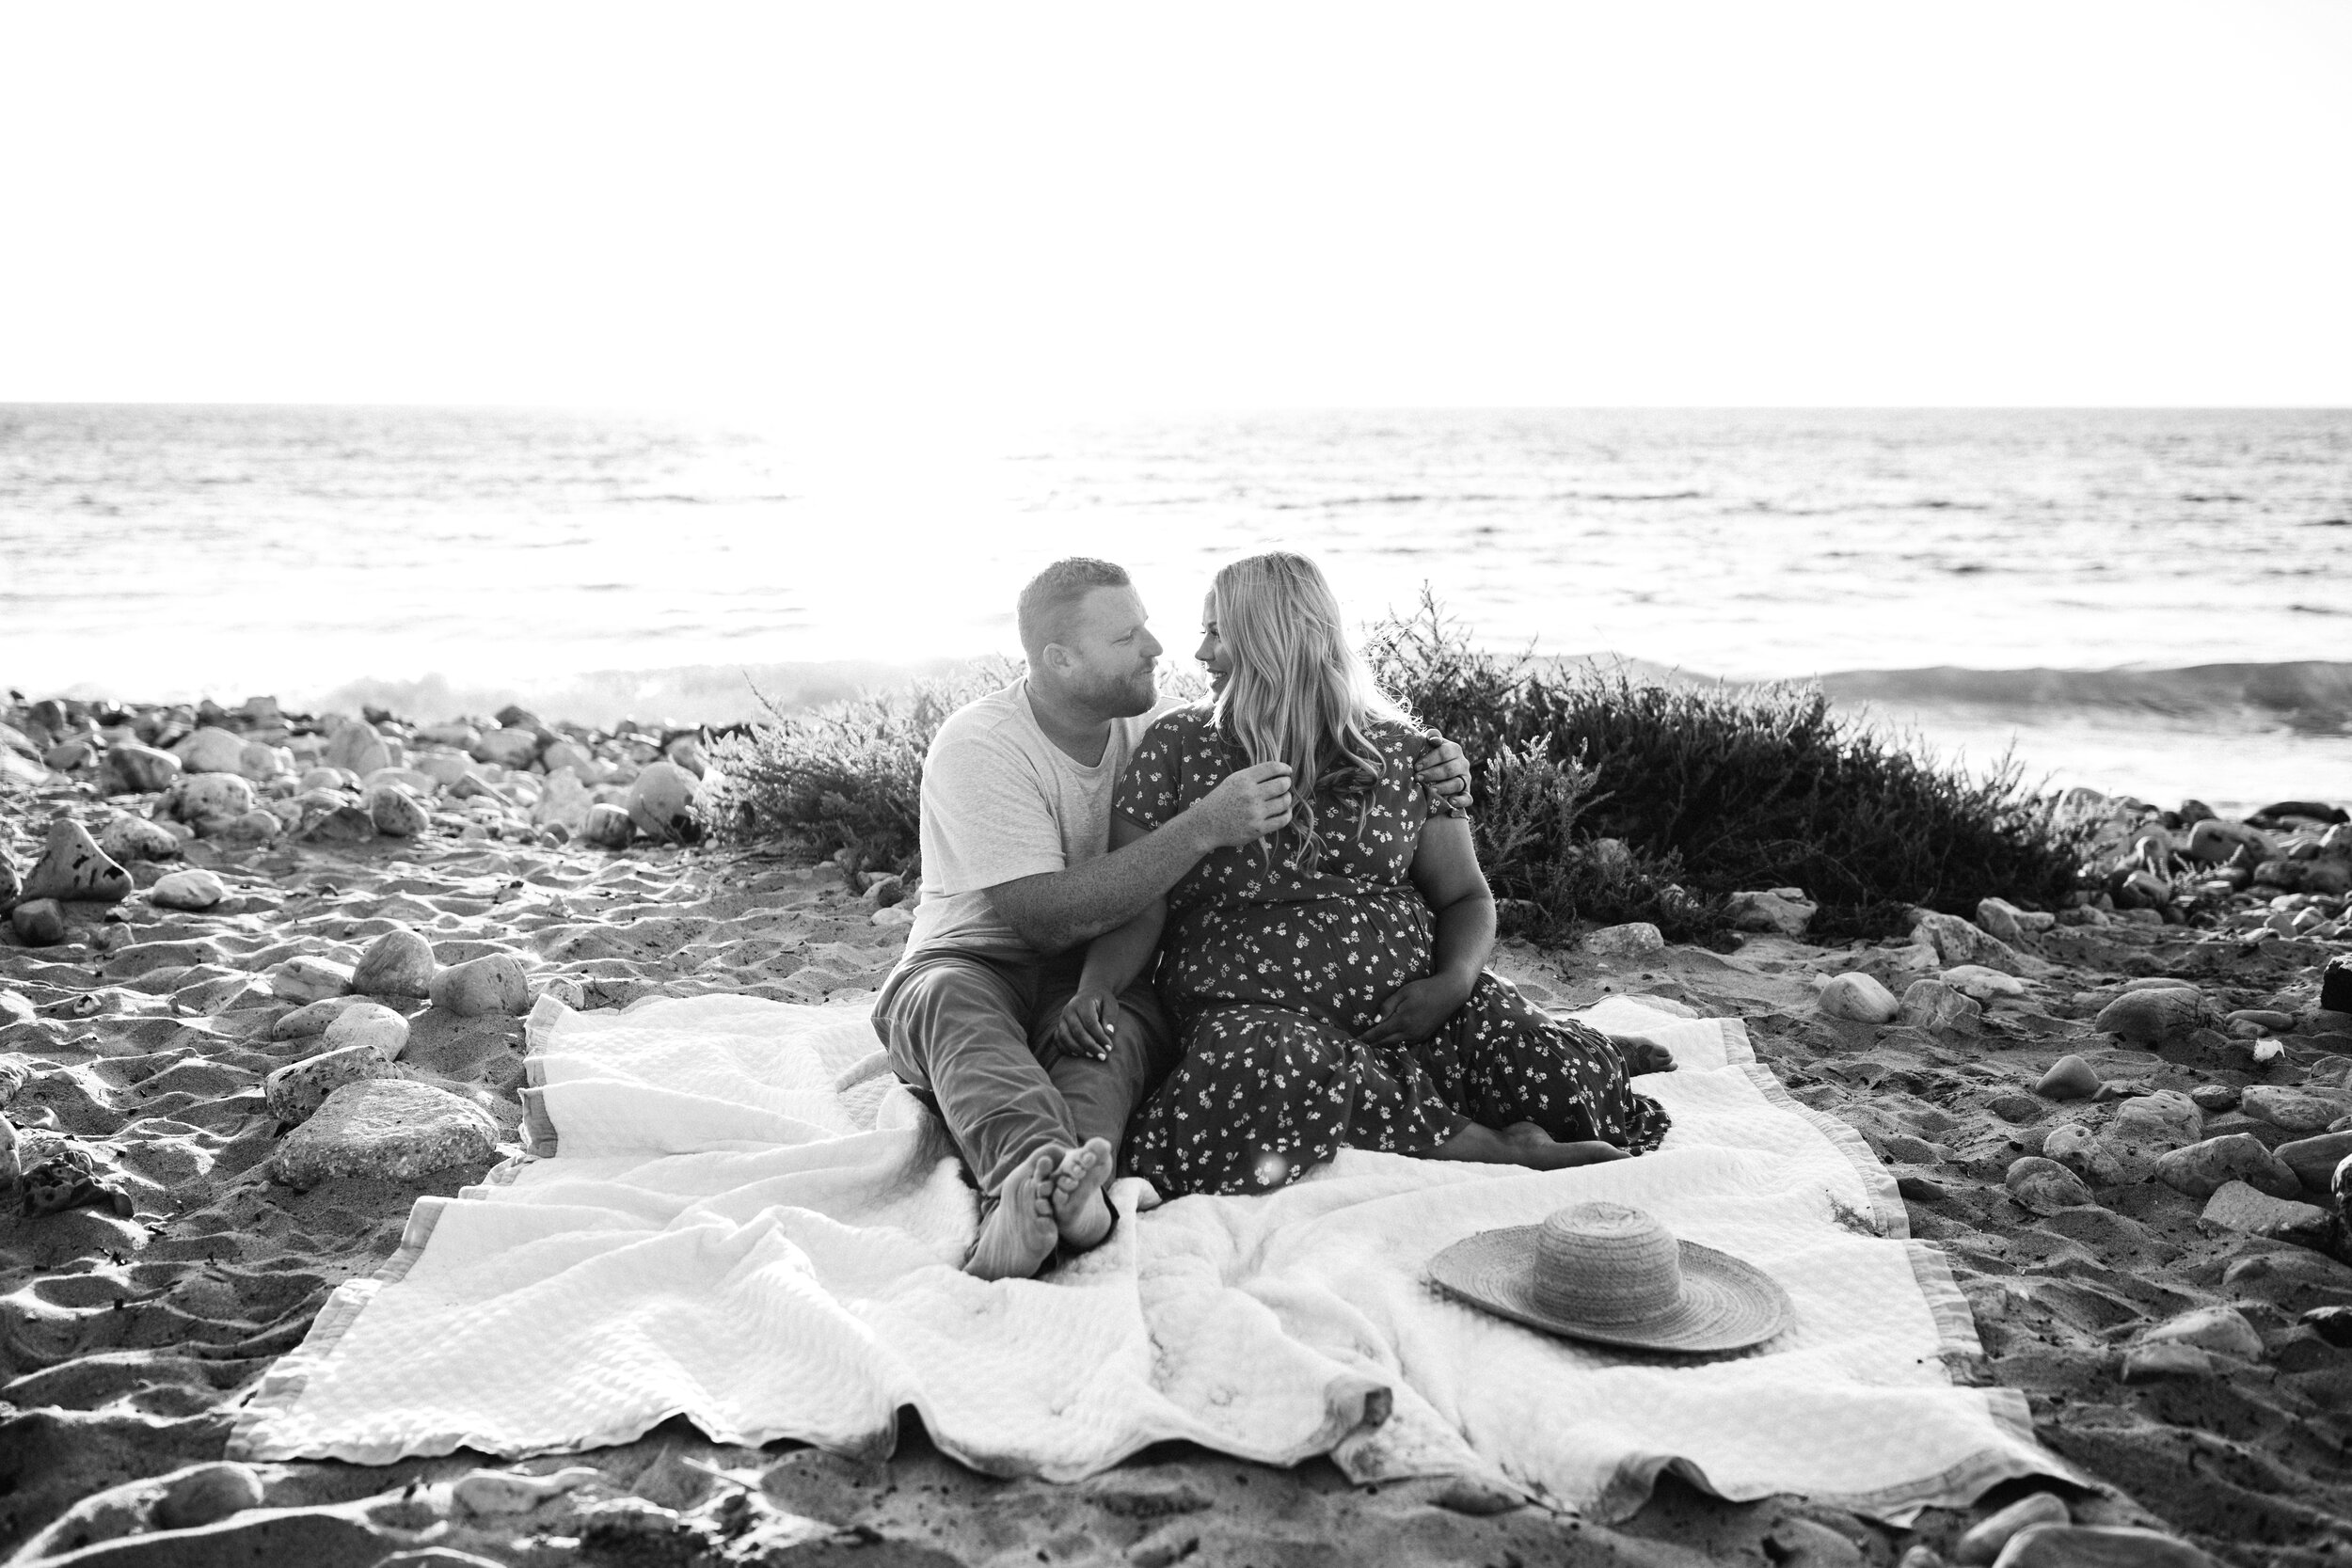 mom and dad cuddling on beach - Lindsay Petty Photography